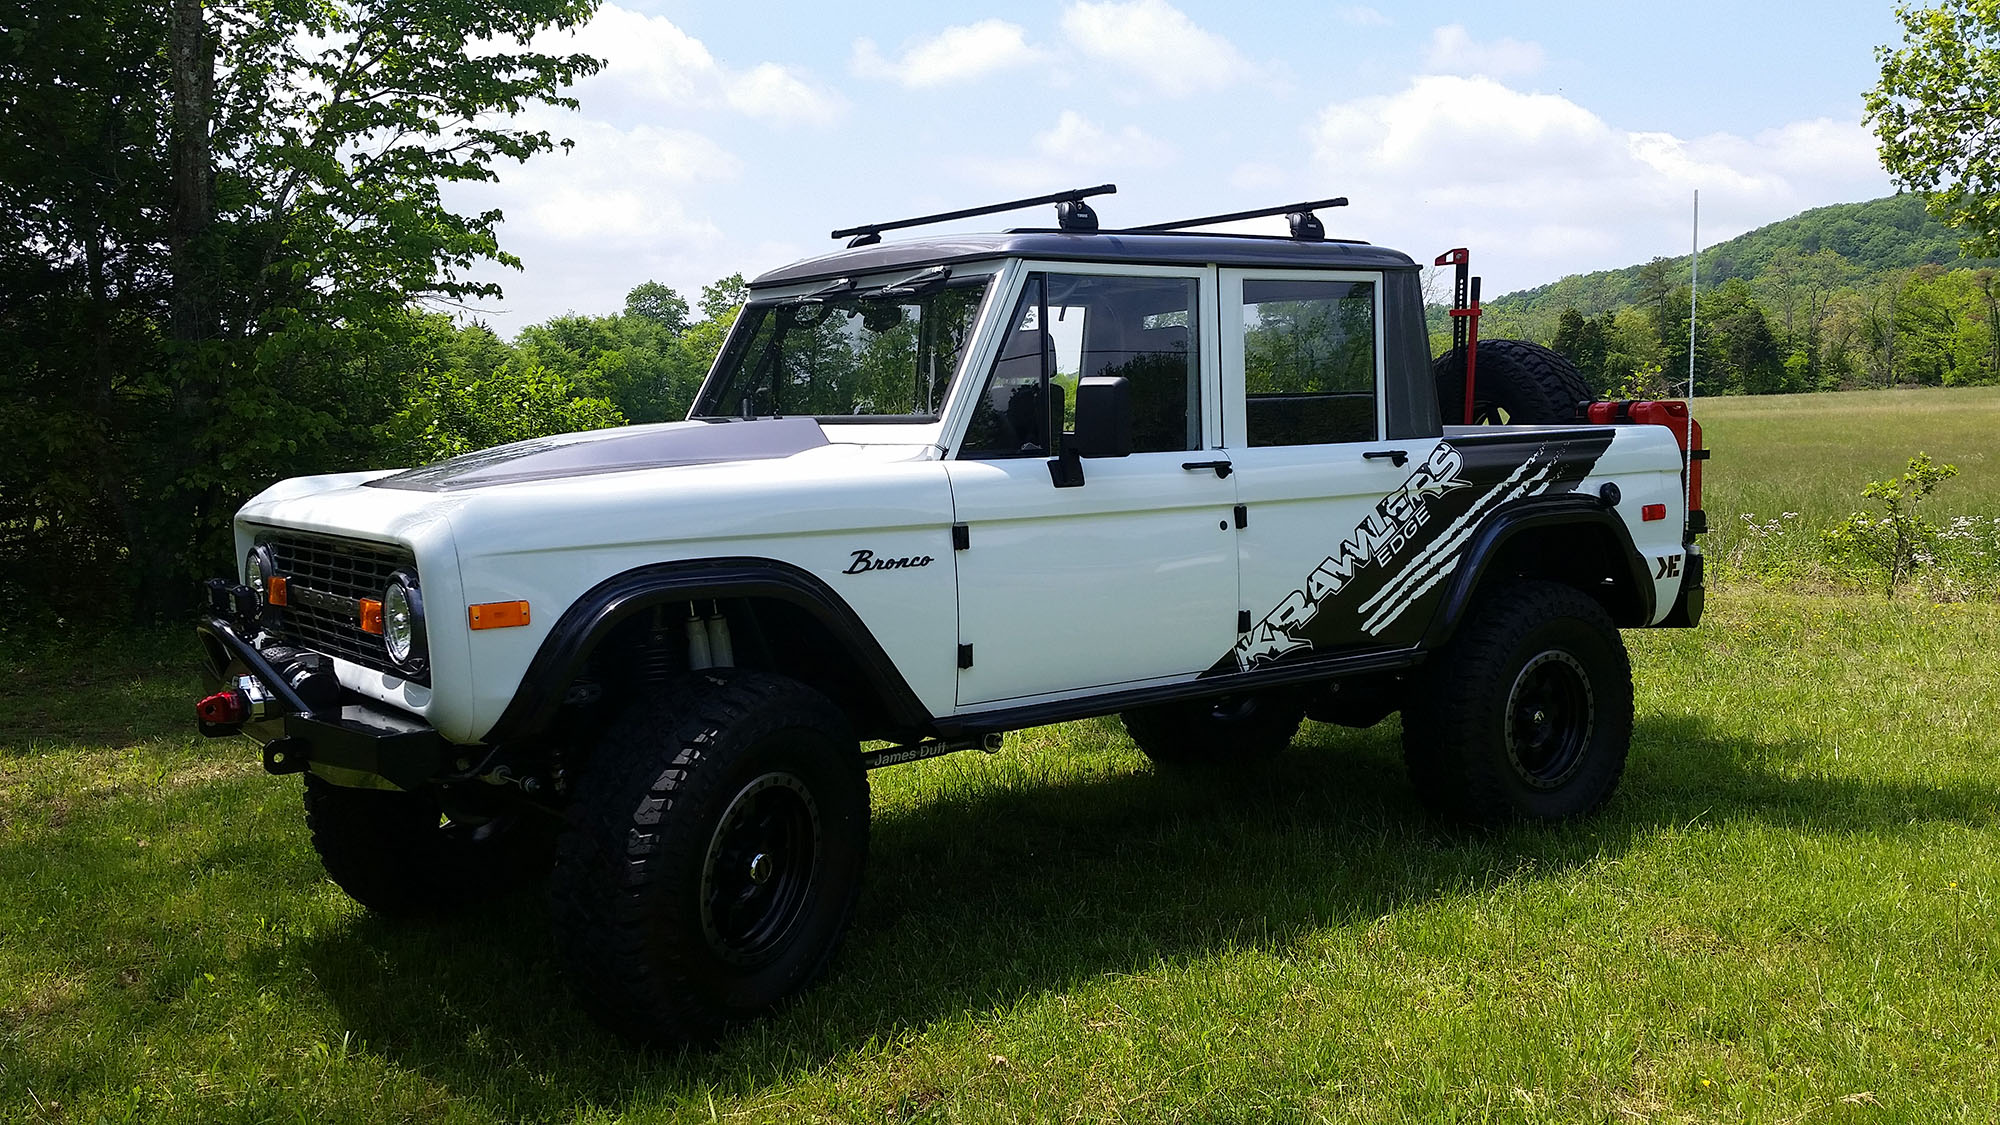 Diesel ford bronco for sale - Early Bronco By Krawlers Edge 4 Door